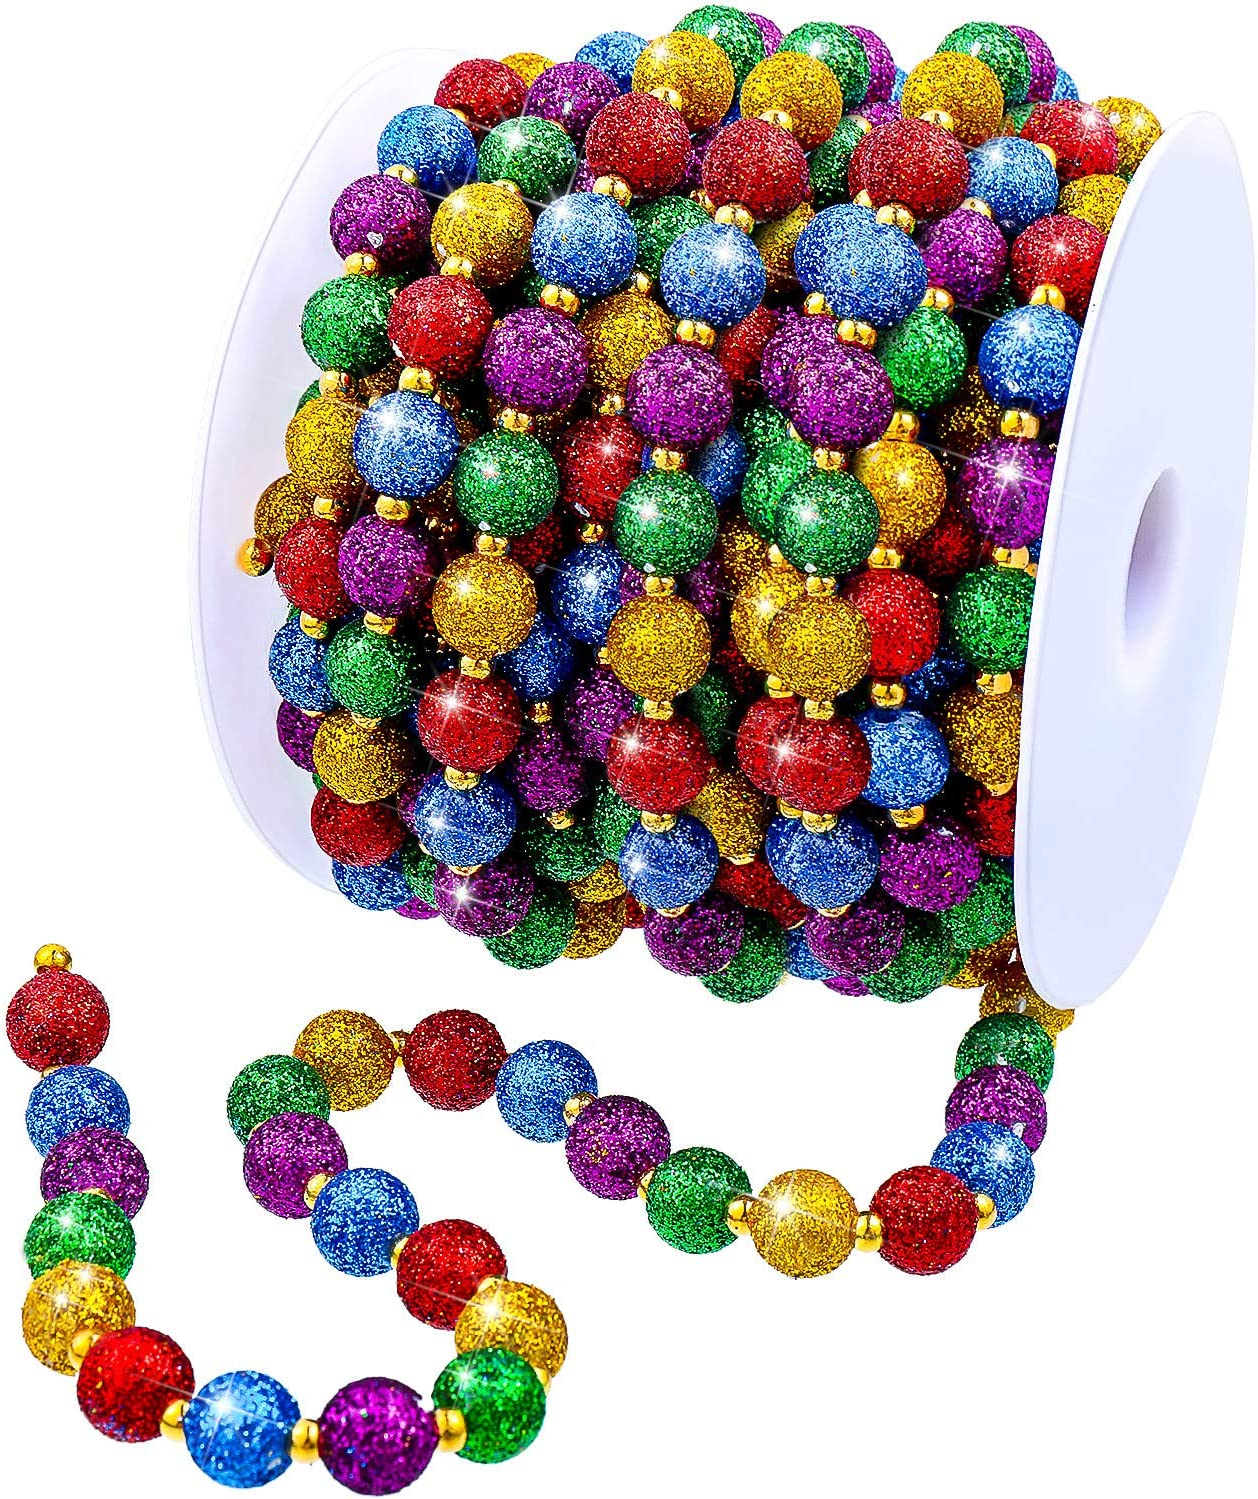 20 Feet Christmas Multi-Color Beaded Garland Glitter Colorful Tree Beads Garland Plastic Beads Garland Ribbon Faux Pearl Bead Garland for Christmas and Holiday Decorations